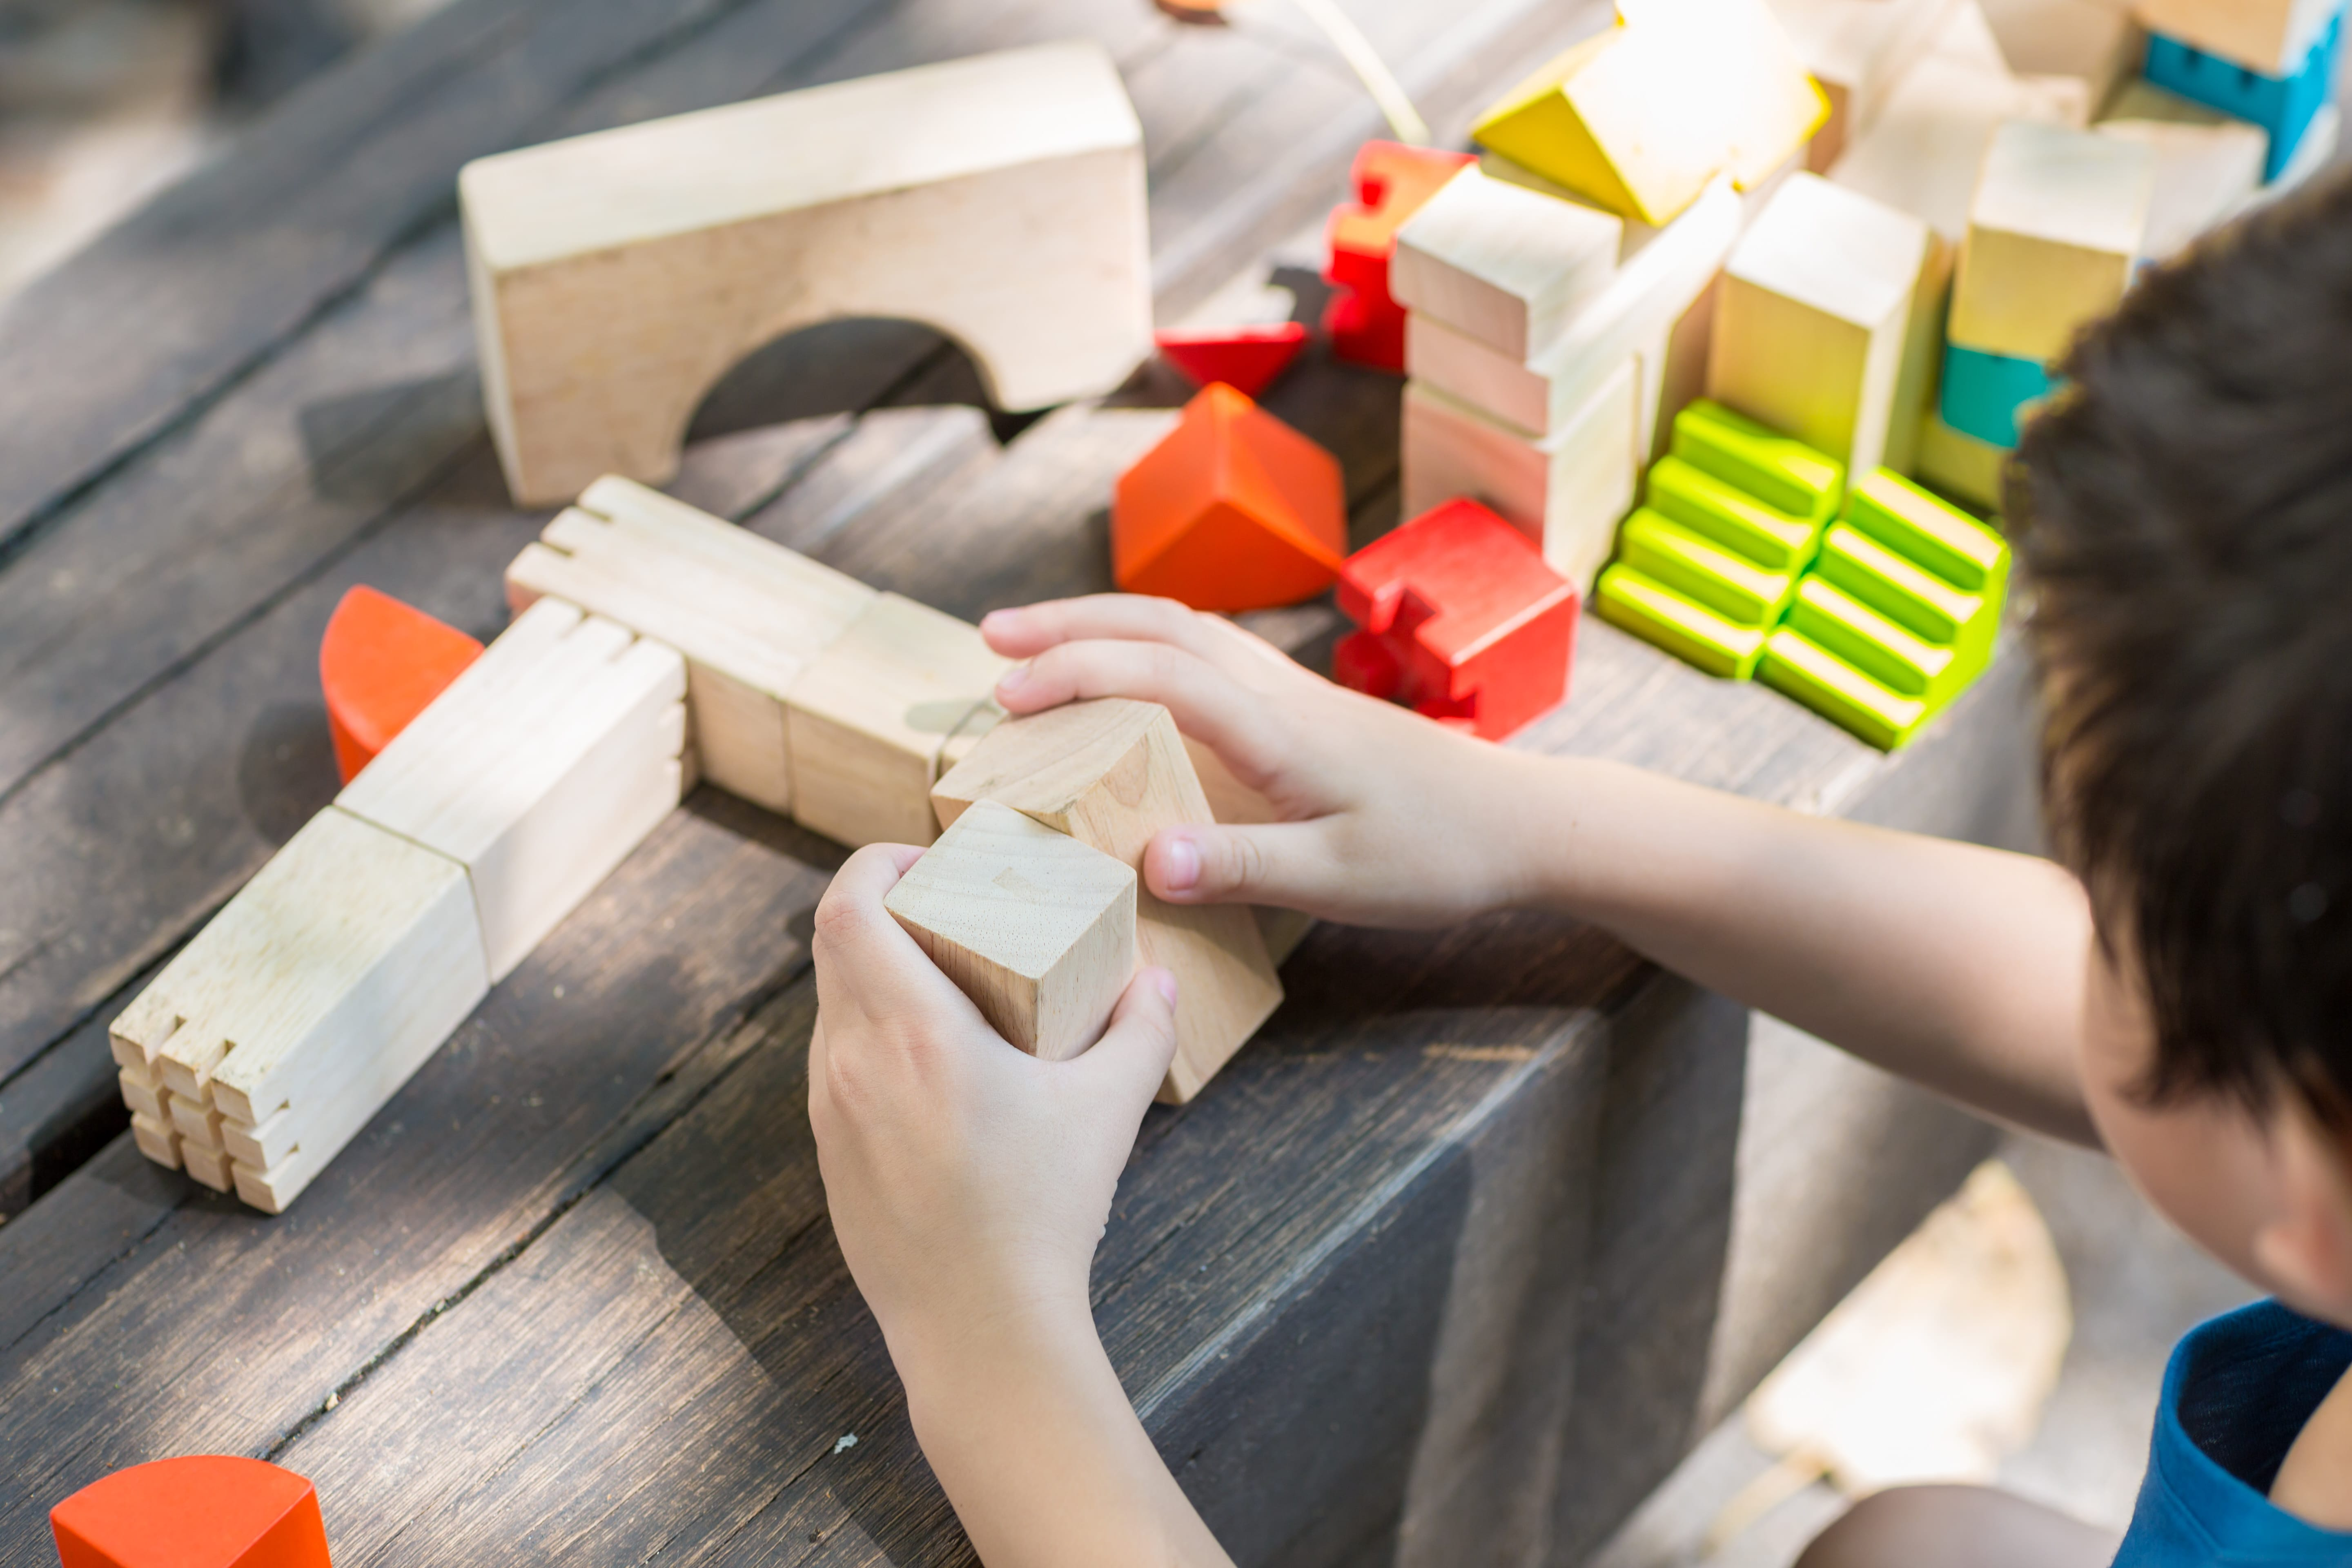 5527_PlanToys_CREATIVE_BLOCKS_Blocks_and_Construction_Mathematical_Creative_Fine_Motor_Language_and_Communications_18m_Wooden_toys_Education_toys_Safety_Toys_Non-toxic_4.jpg